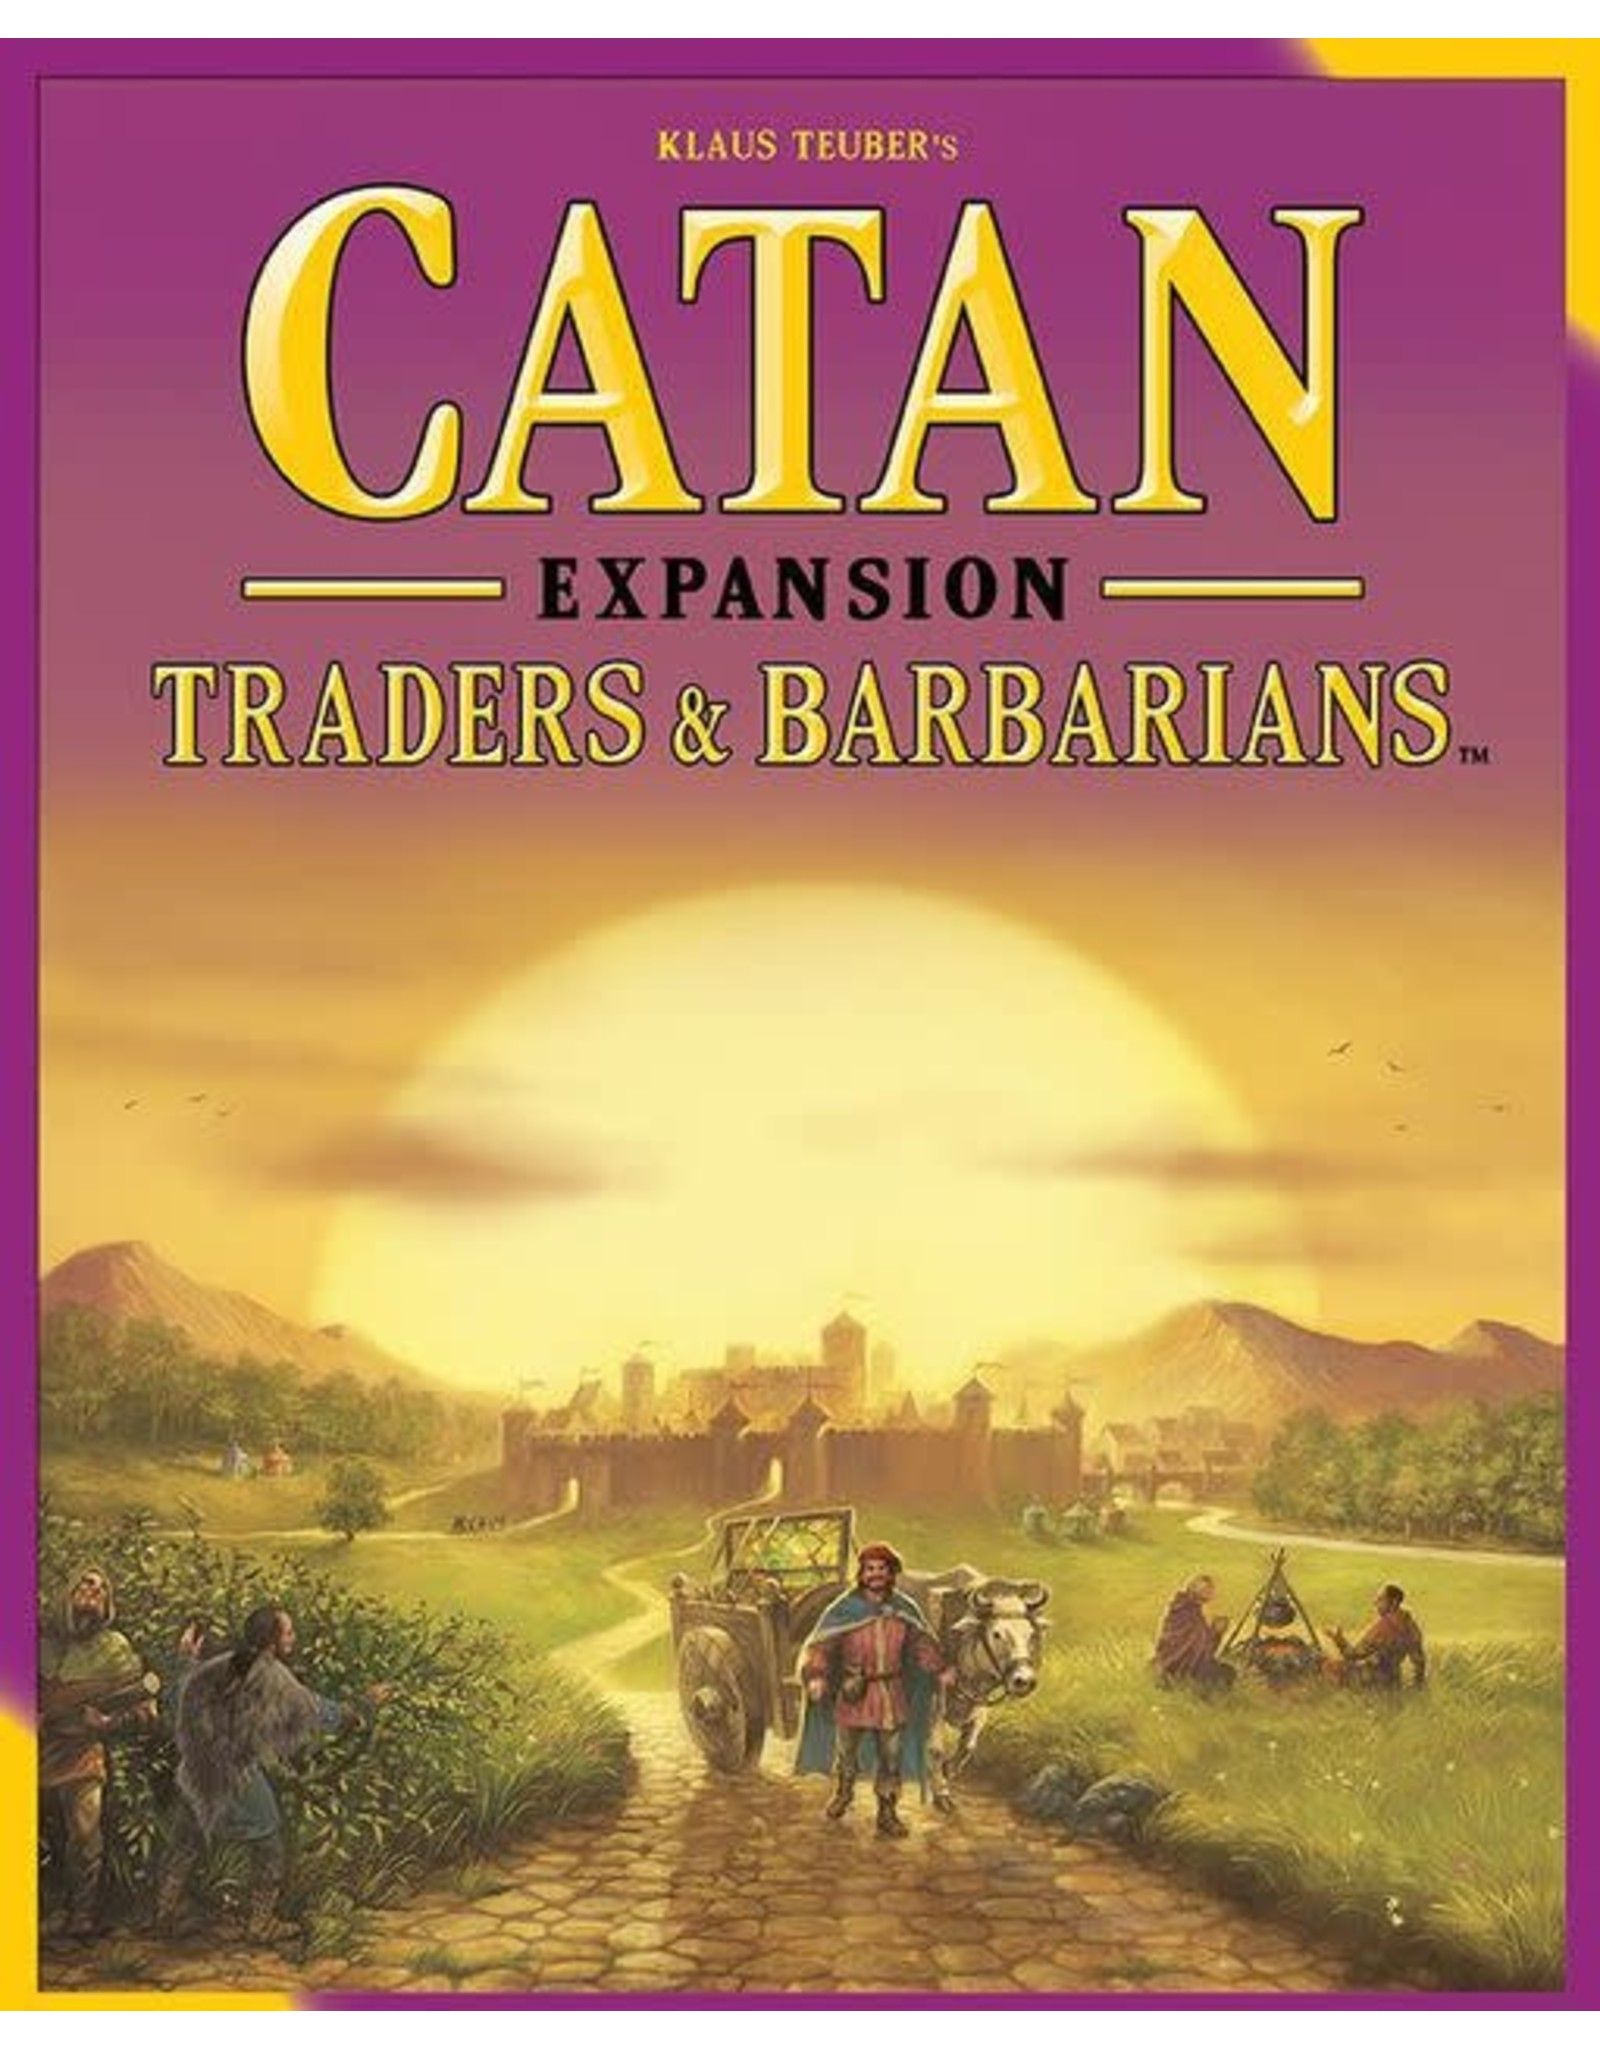 Catan Studio Catan Expansion Traders & Barbarians